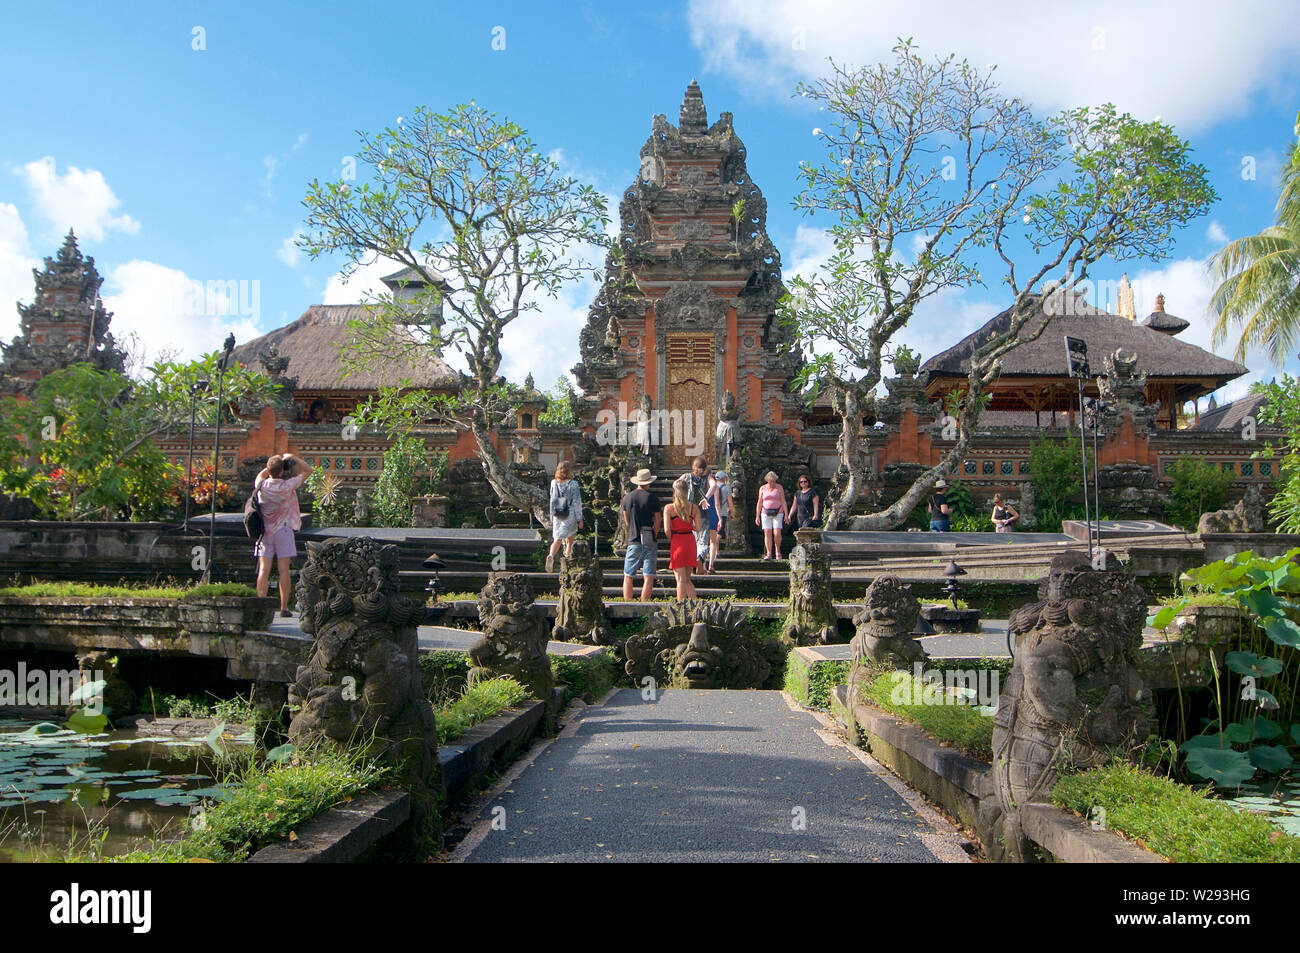 Ubud, Bali, Indonesia - 5th May 2019 : View of the beautiful Pura Taman Saraswati temple (also know as Ubud Water Palace) one of the most important to - Stock Image